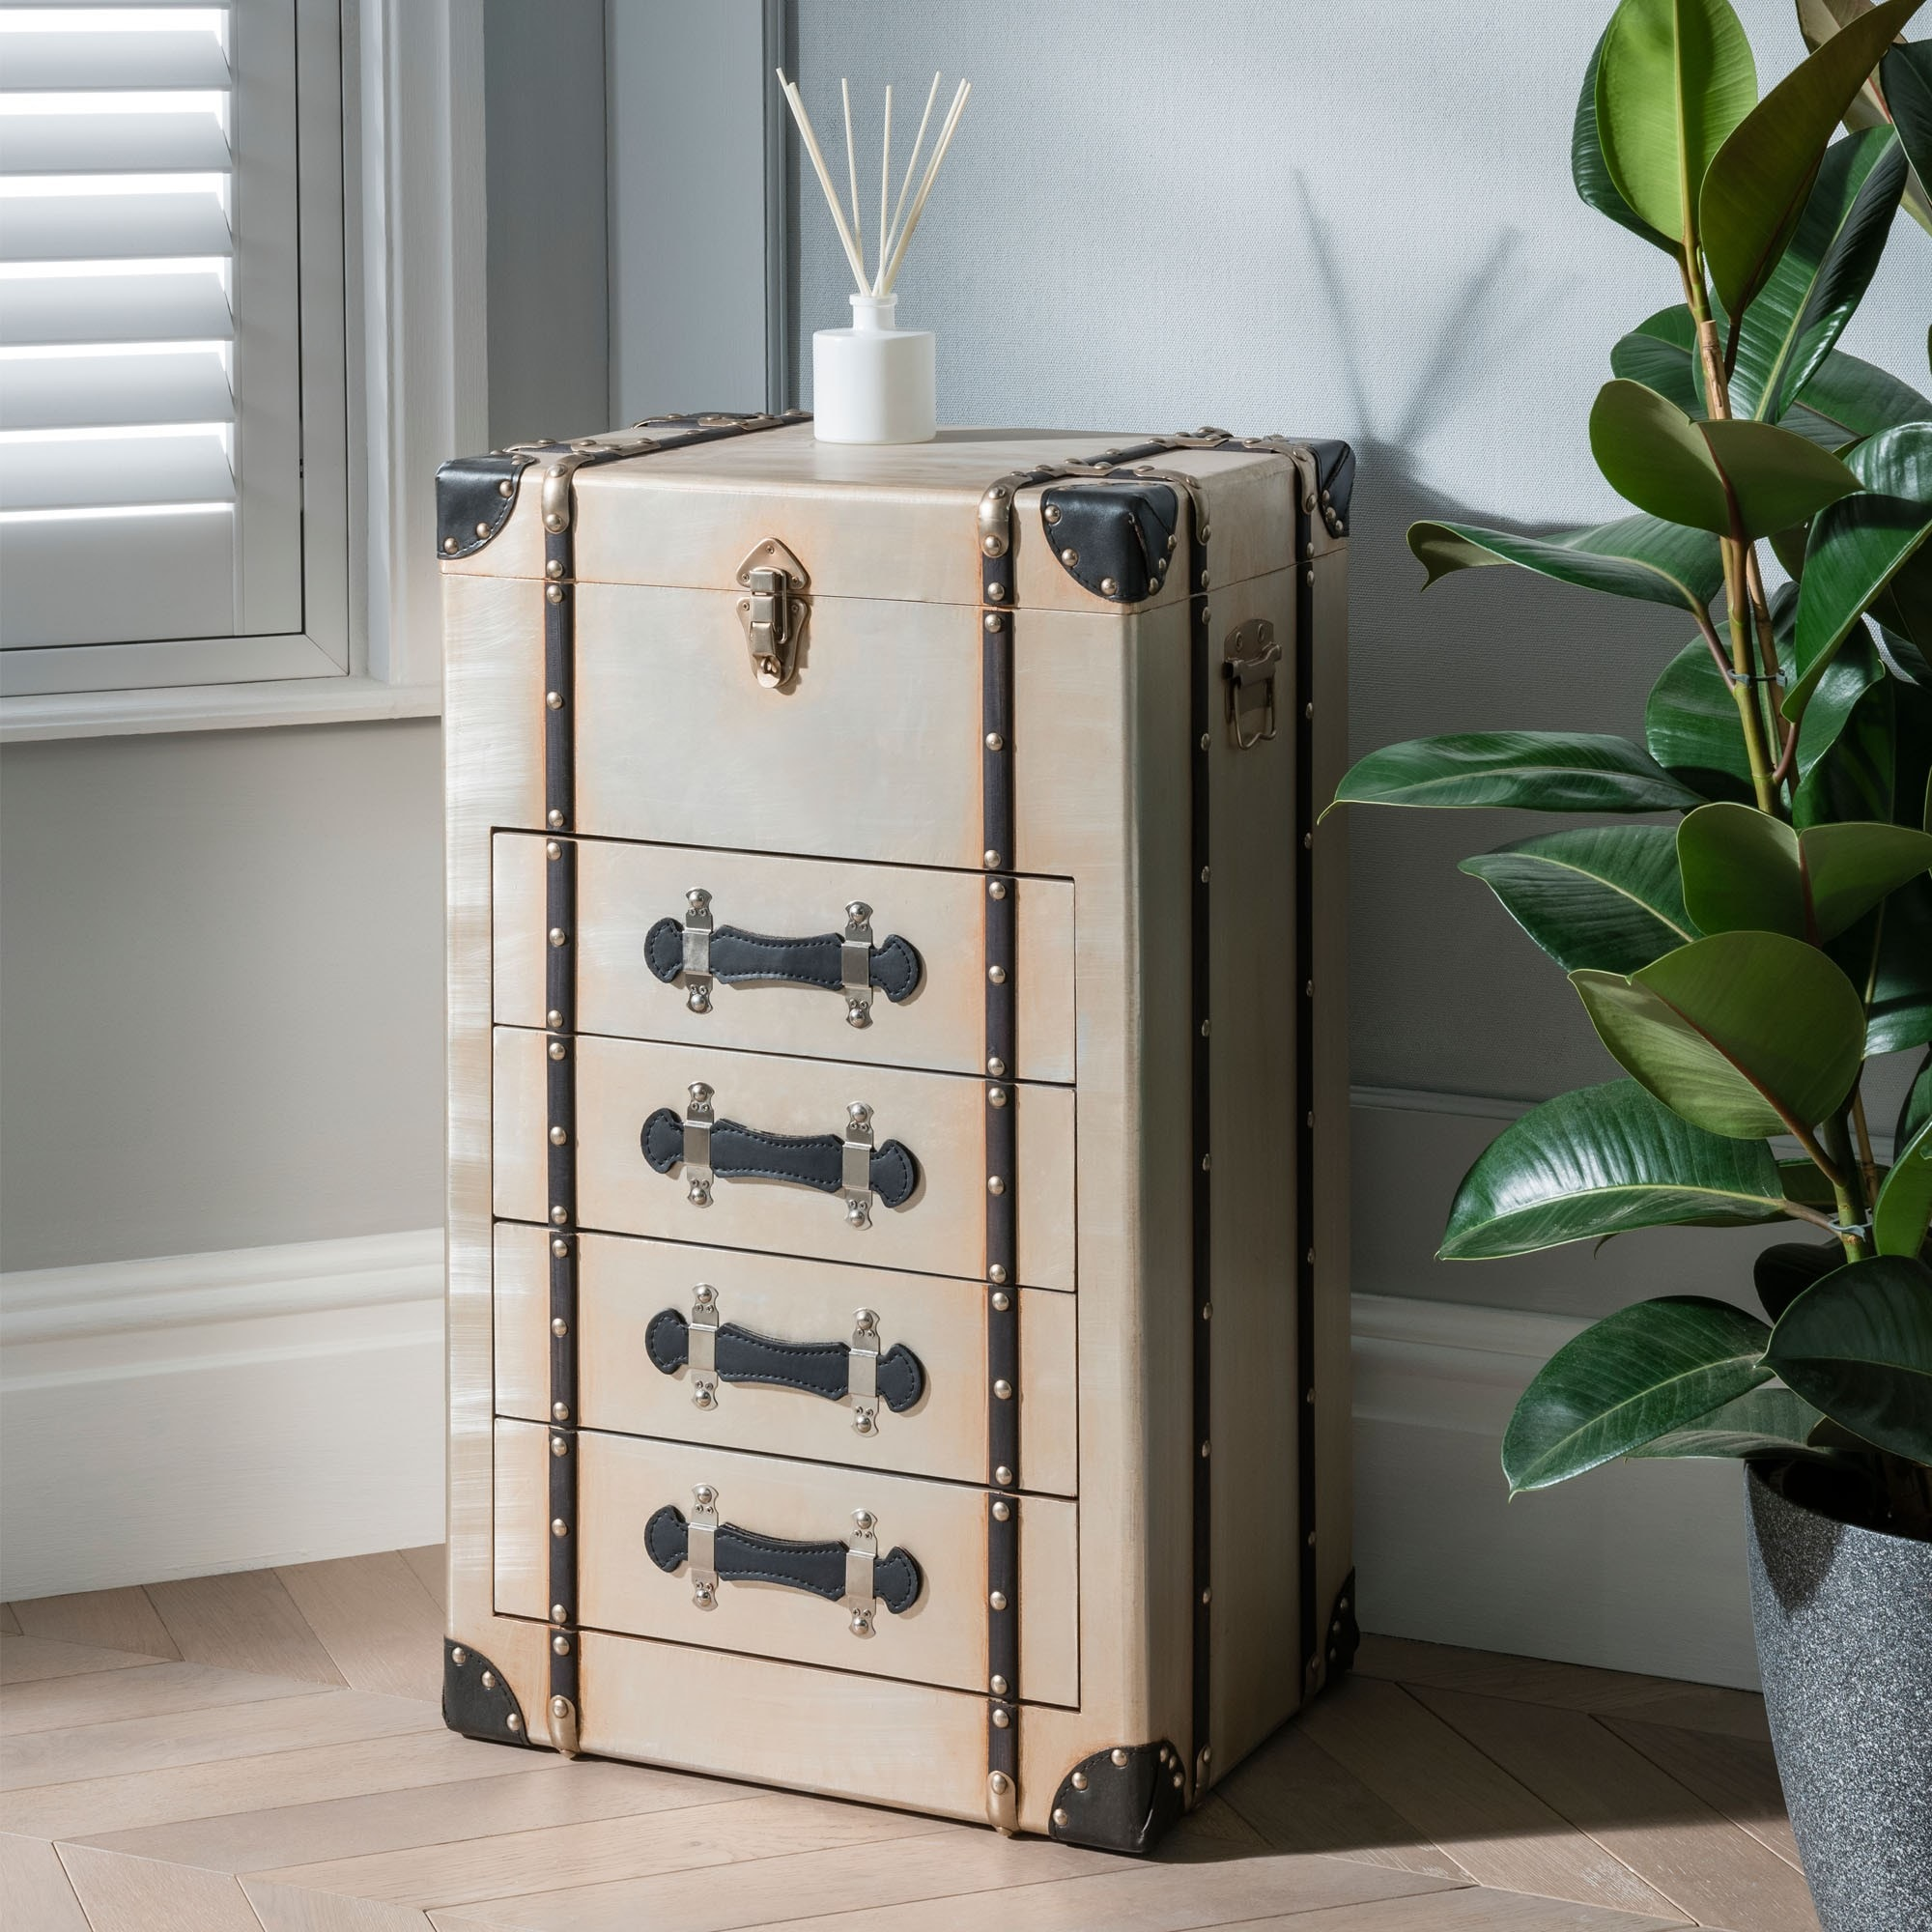 Decorative storage trunks you'll adore